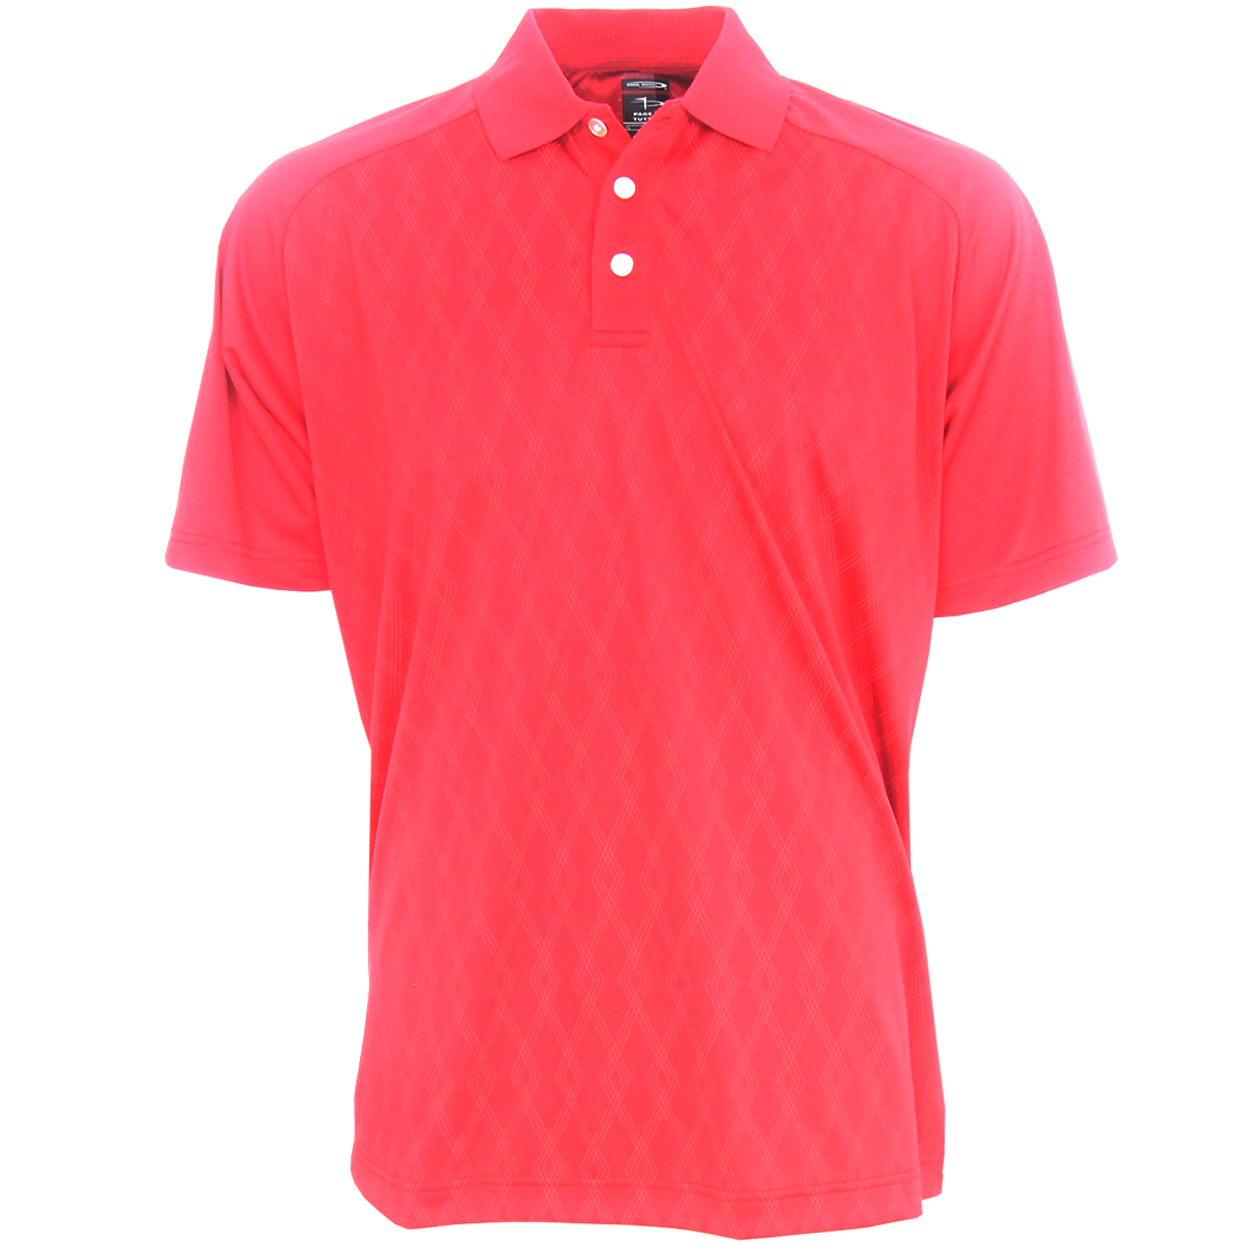 page tuttle cool swing diamond pattern men 39 s polo golf